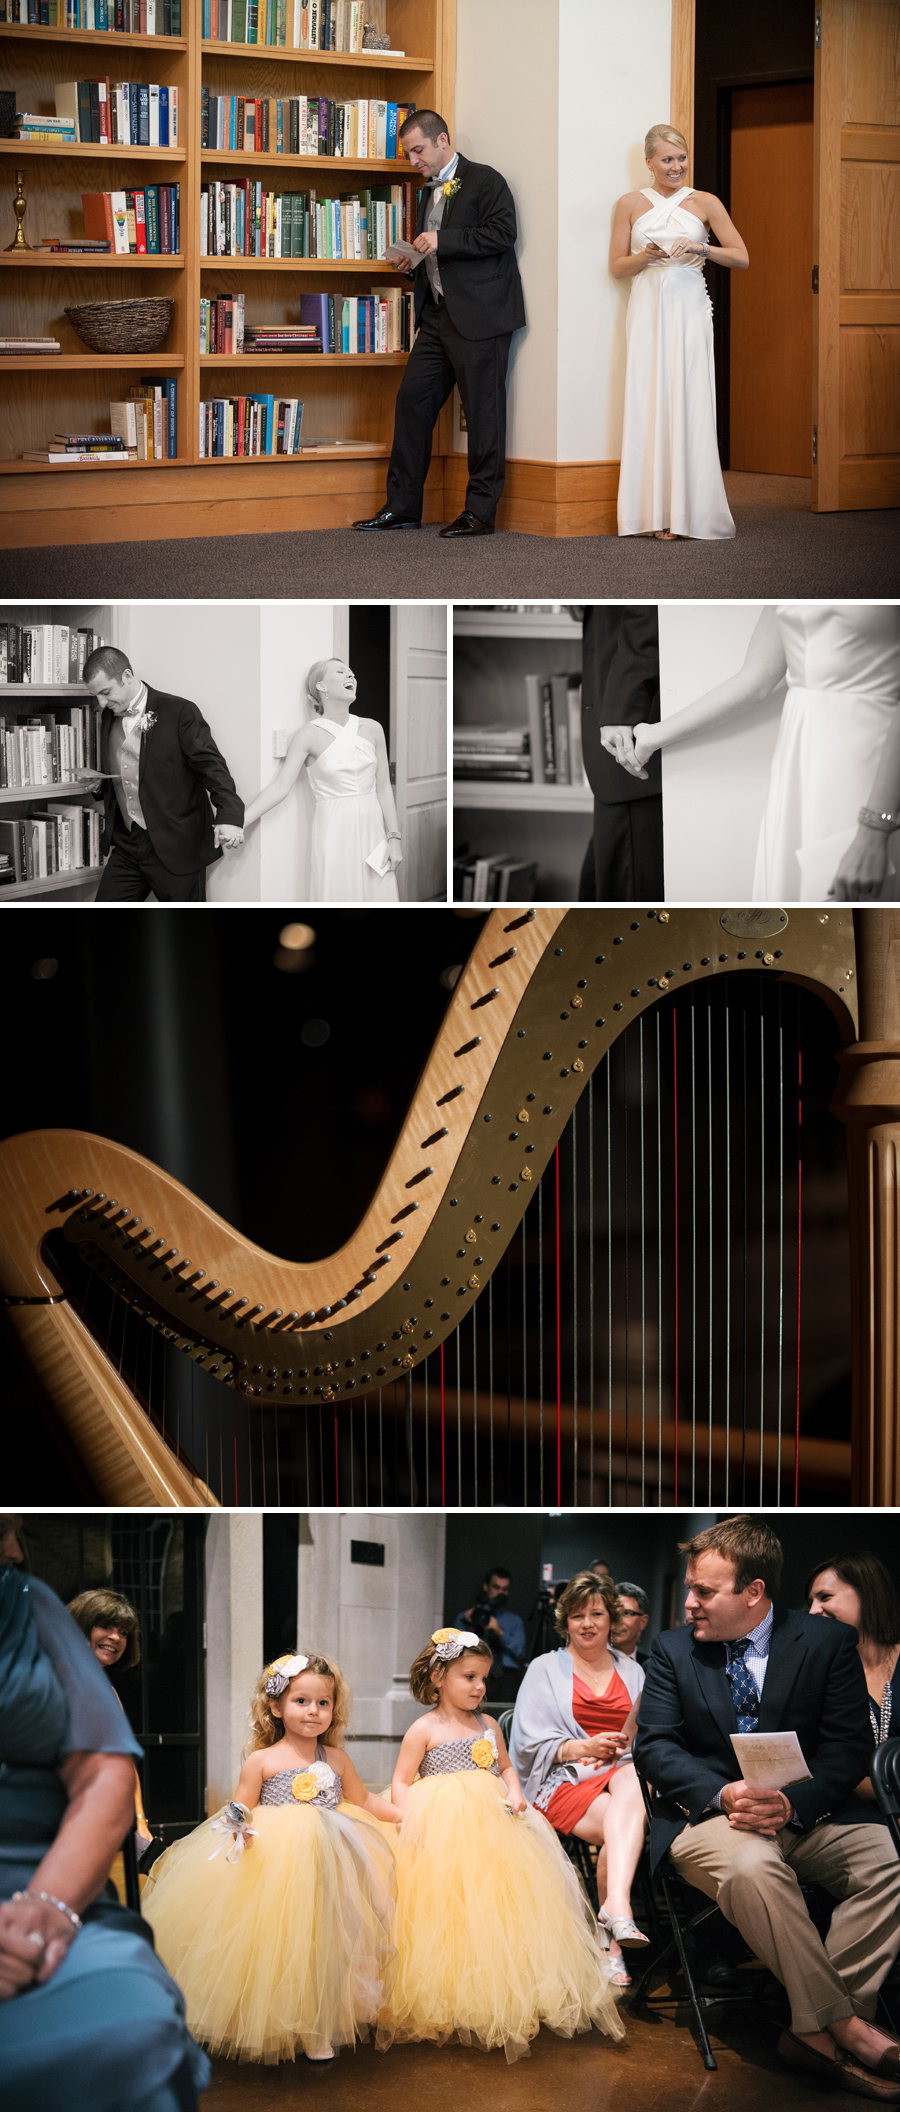 Sydney and Phillip wedding at the Upcountry History Museum Greenville, SC